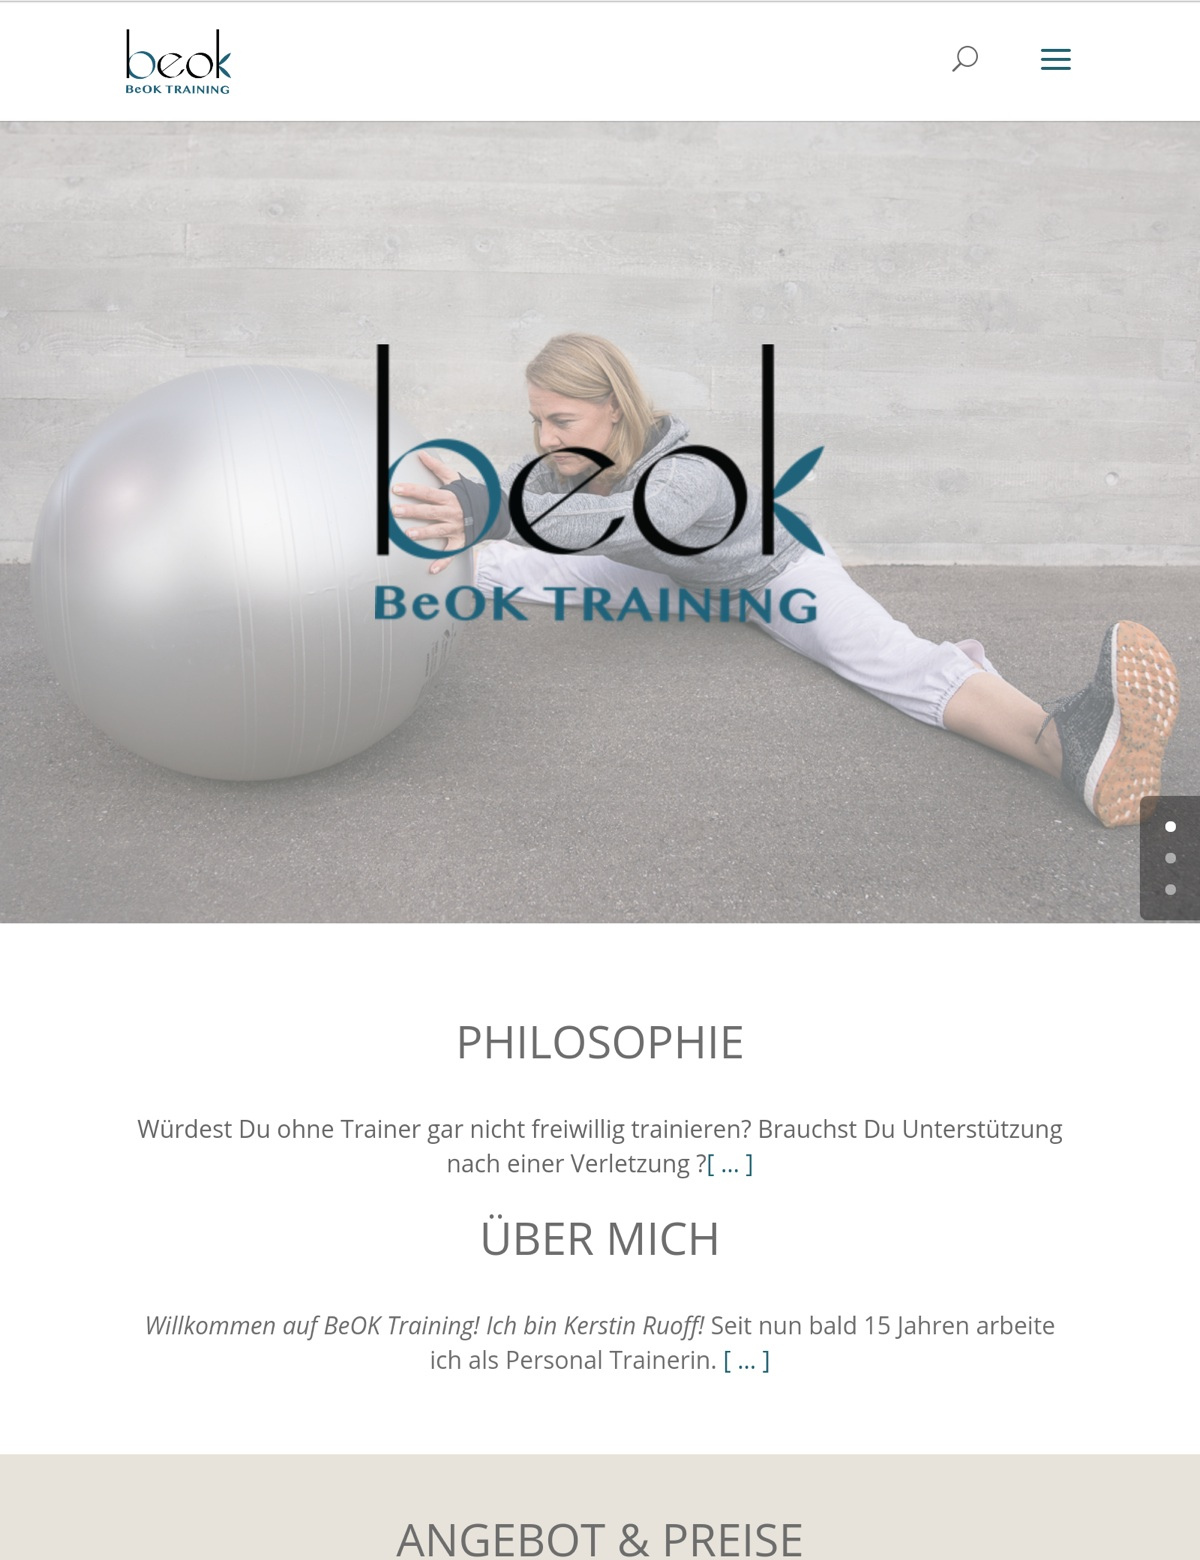 BeOK Training Branding and Website by Social52.ch